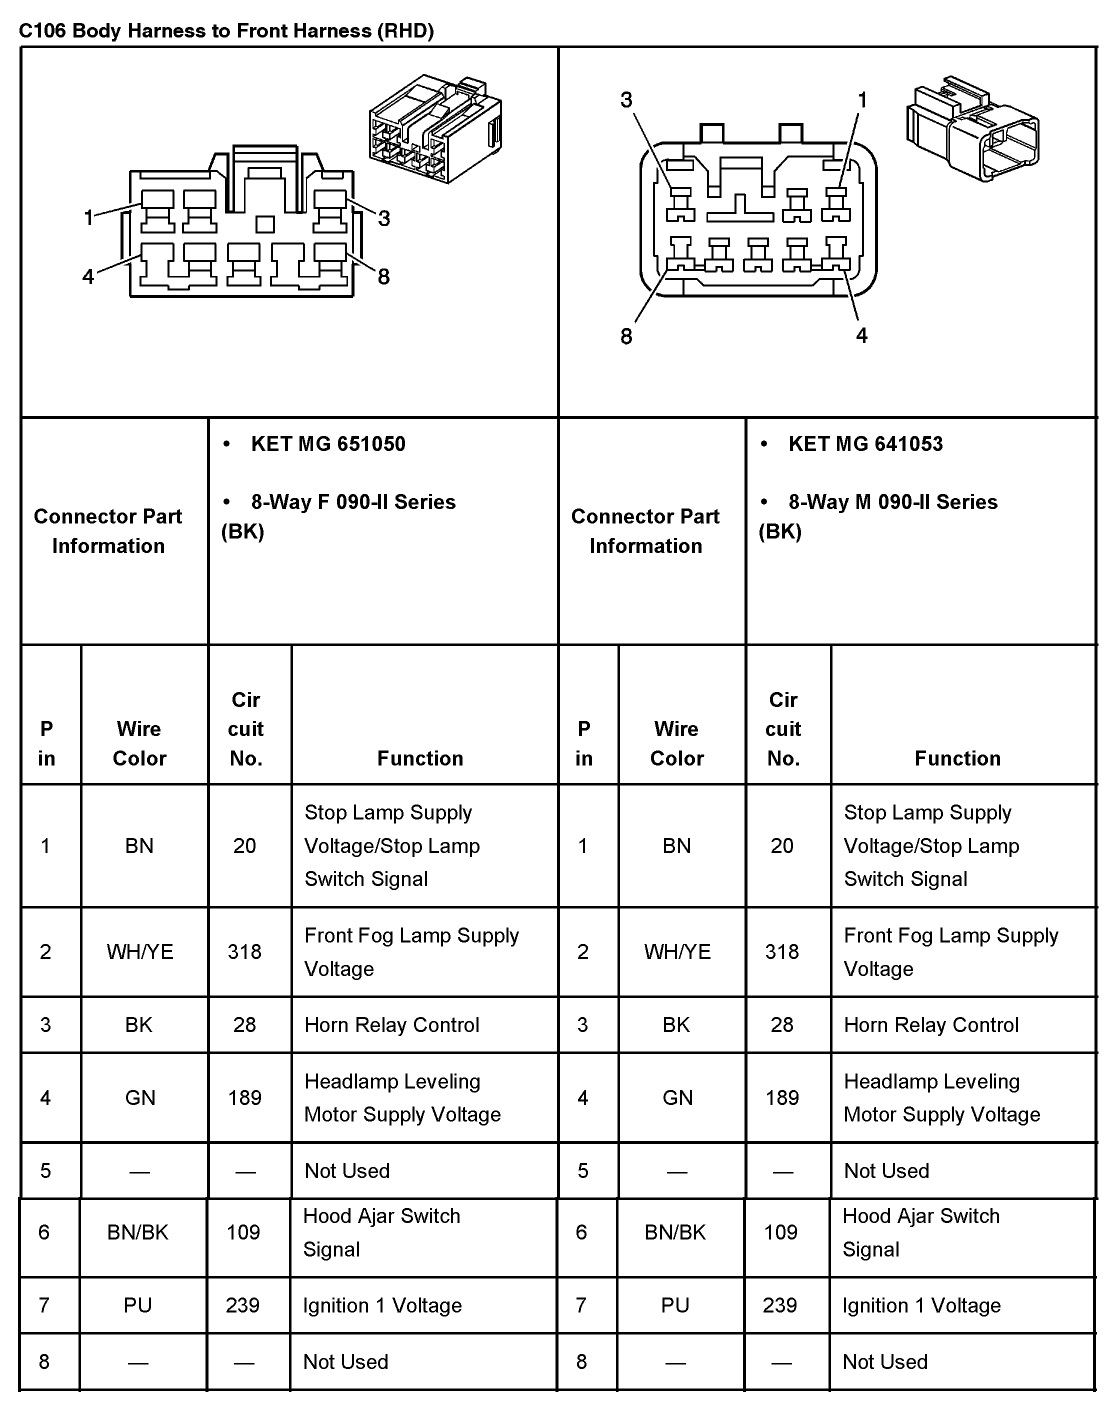 2005 aveo master connector list and diagrams 2006 chevy equinox stereo wiring diagram 2006 chevy equinox fuse box diagram